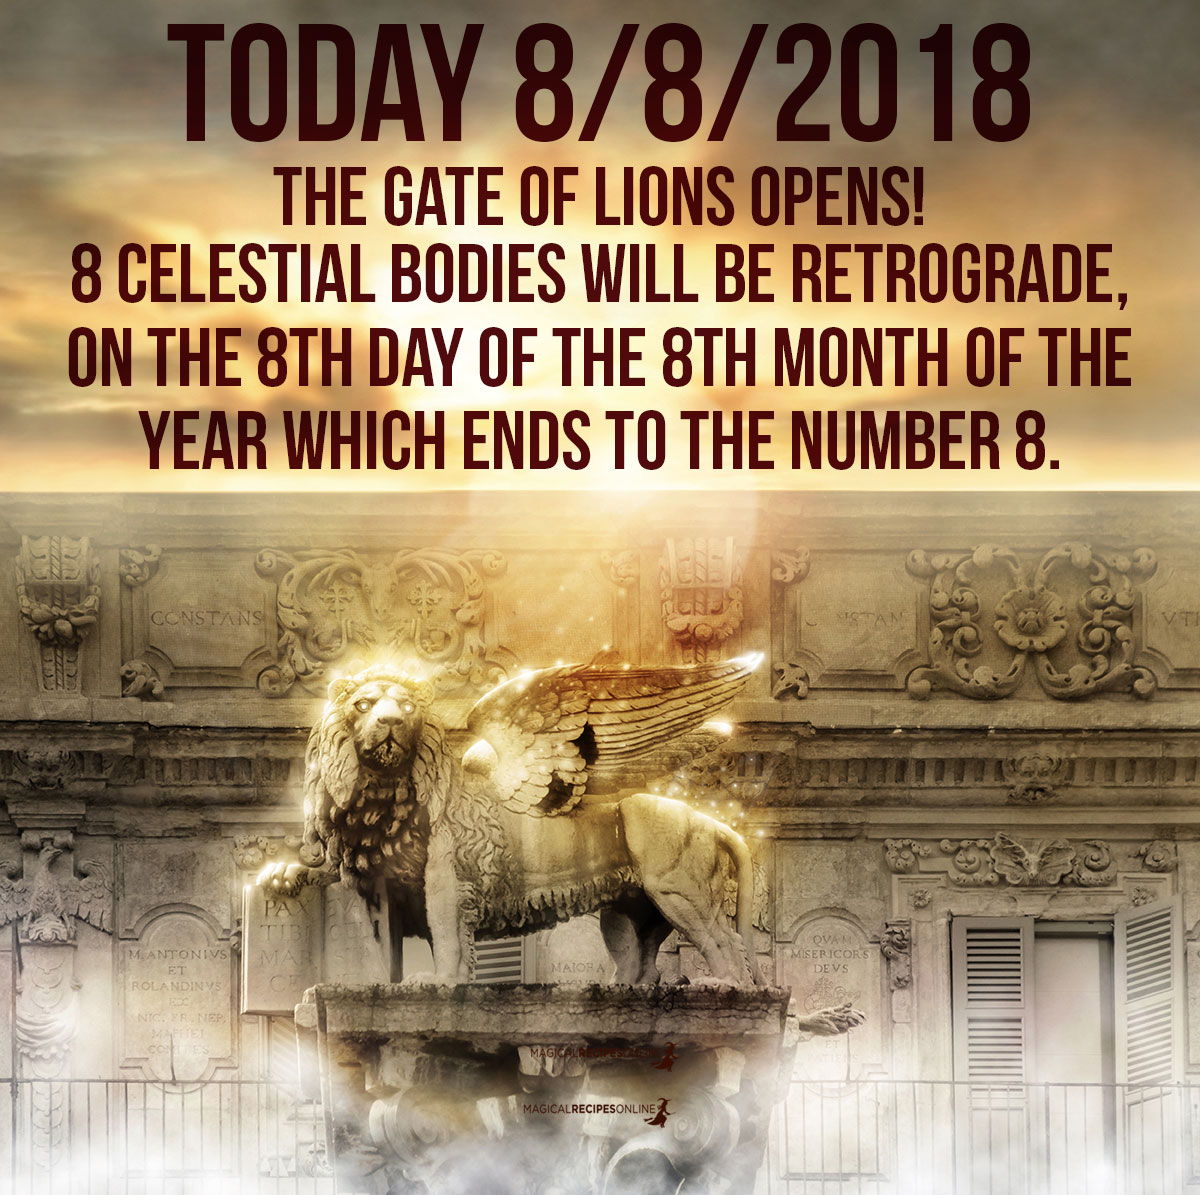 8 Celestial Bodies bodies will be Retrograde, on the 8th day of the 8th month of the year which ends to the number 8.